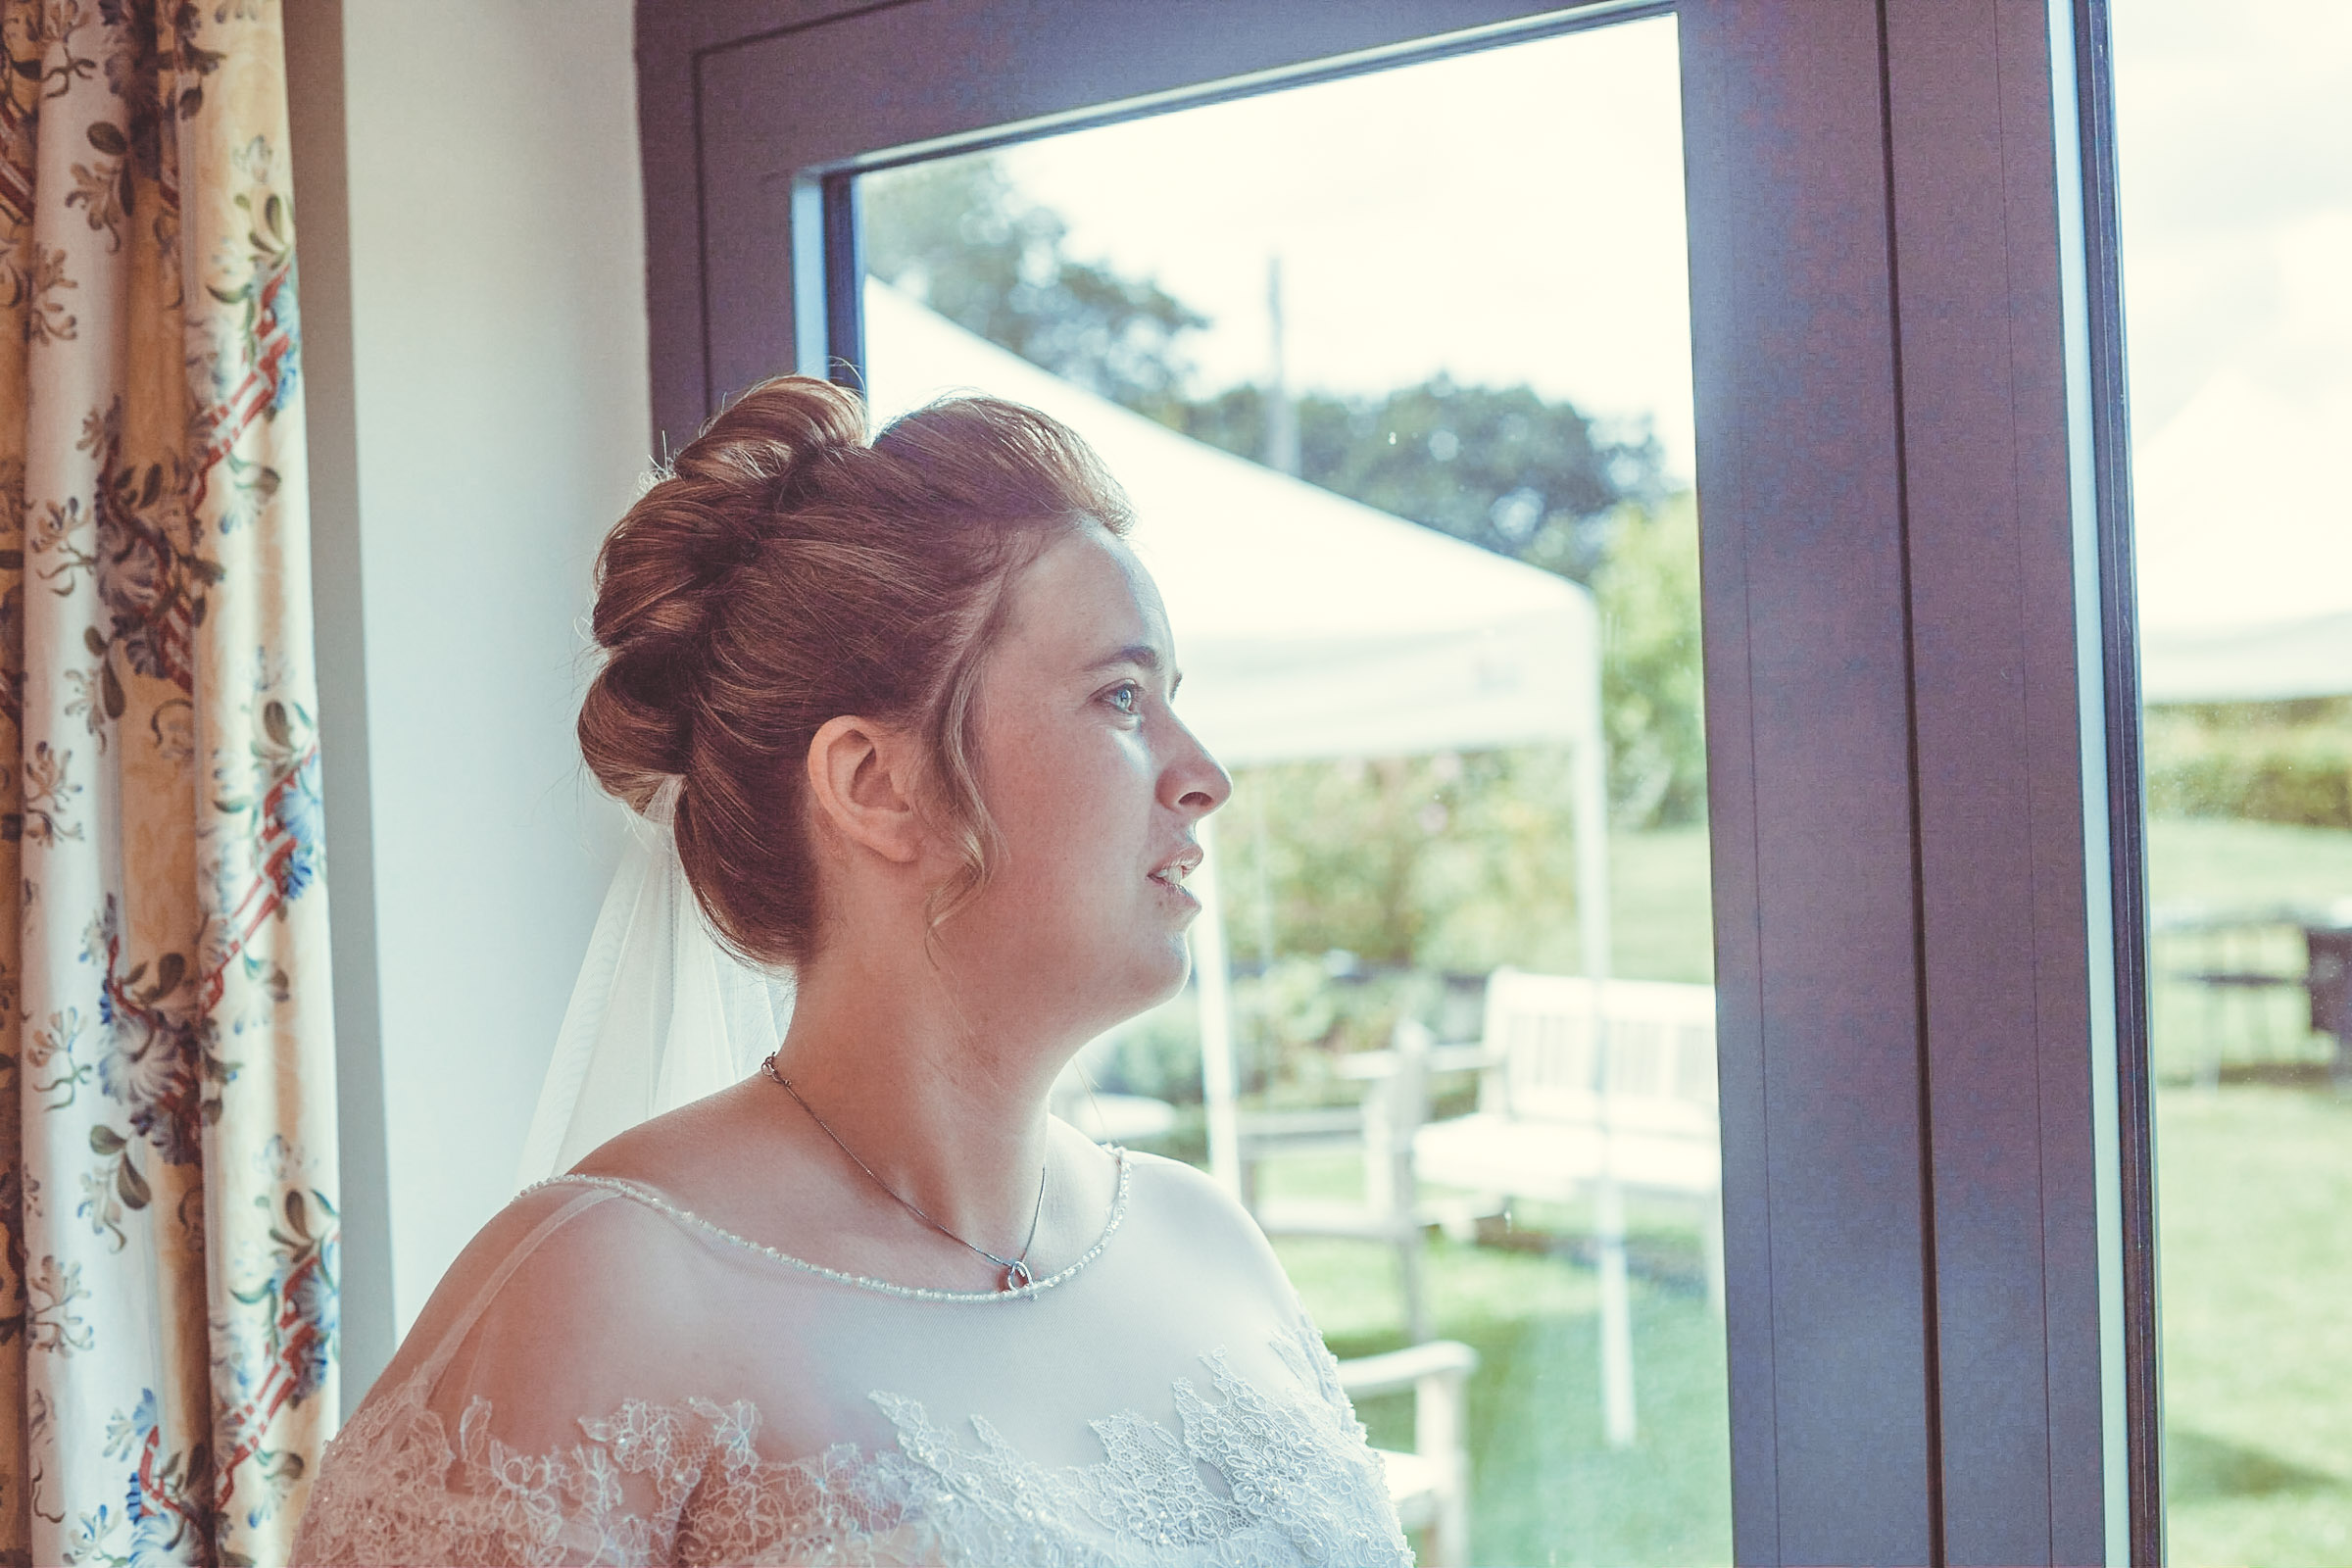 Natalie Heron looking out of the window on her wedding day.